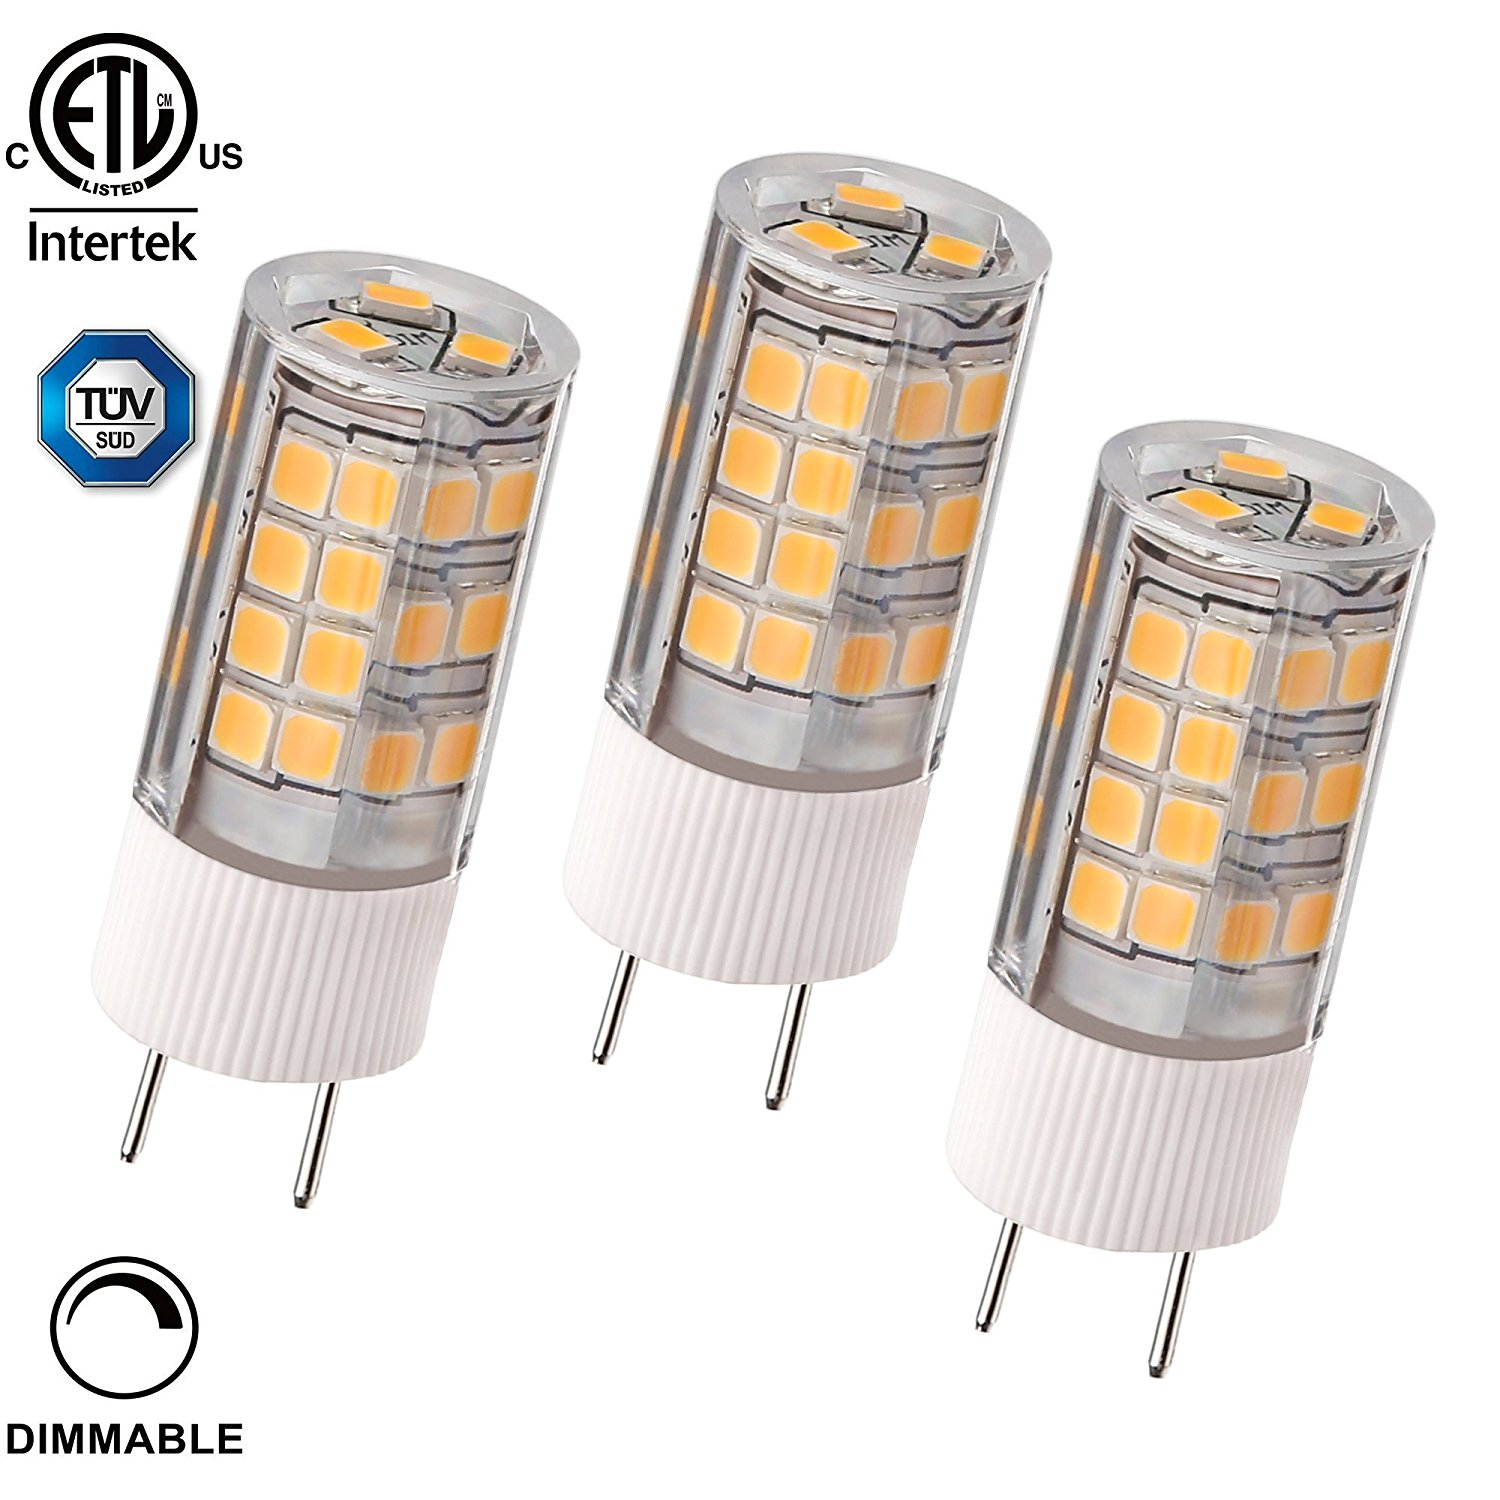 3 PACK 3.5W Dimmable G8 LED Light Bulb, 40W Bi-Pin Xenon JCD Type Halogen Replacement, 350lm, 2700K Soft White, Puck Light, Under Cabinet Light, Desk Lamps, 100-130V